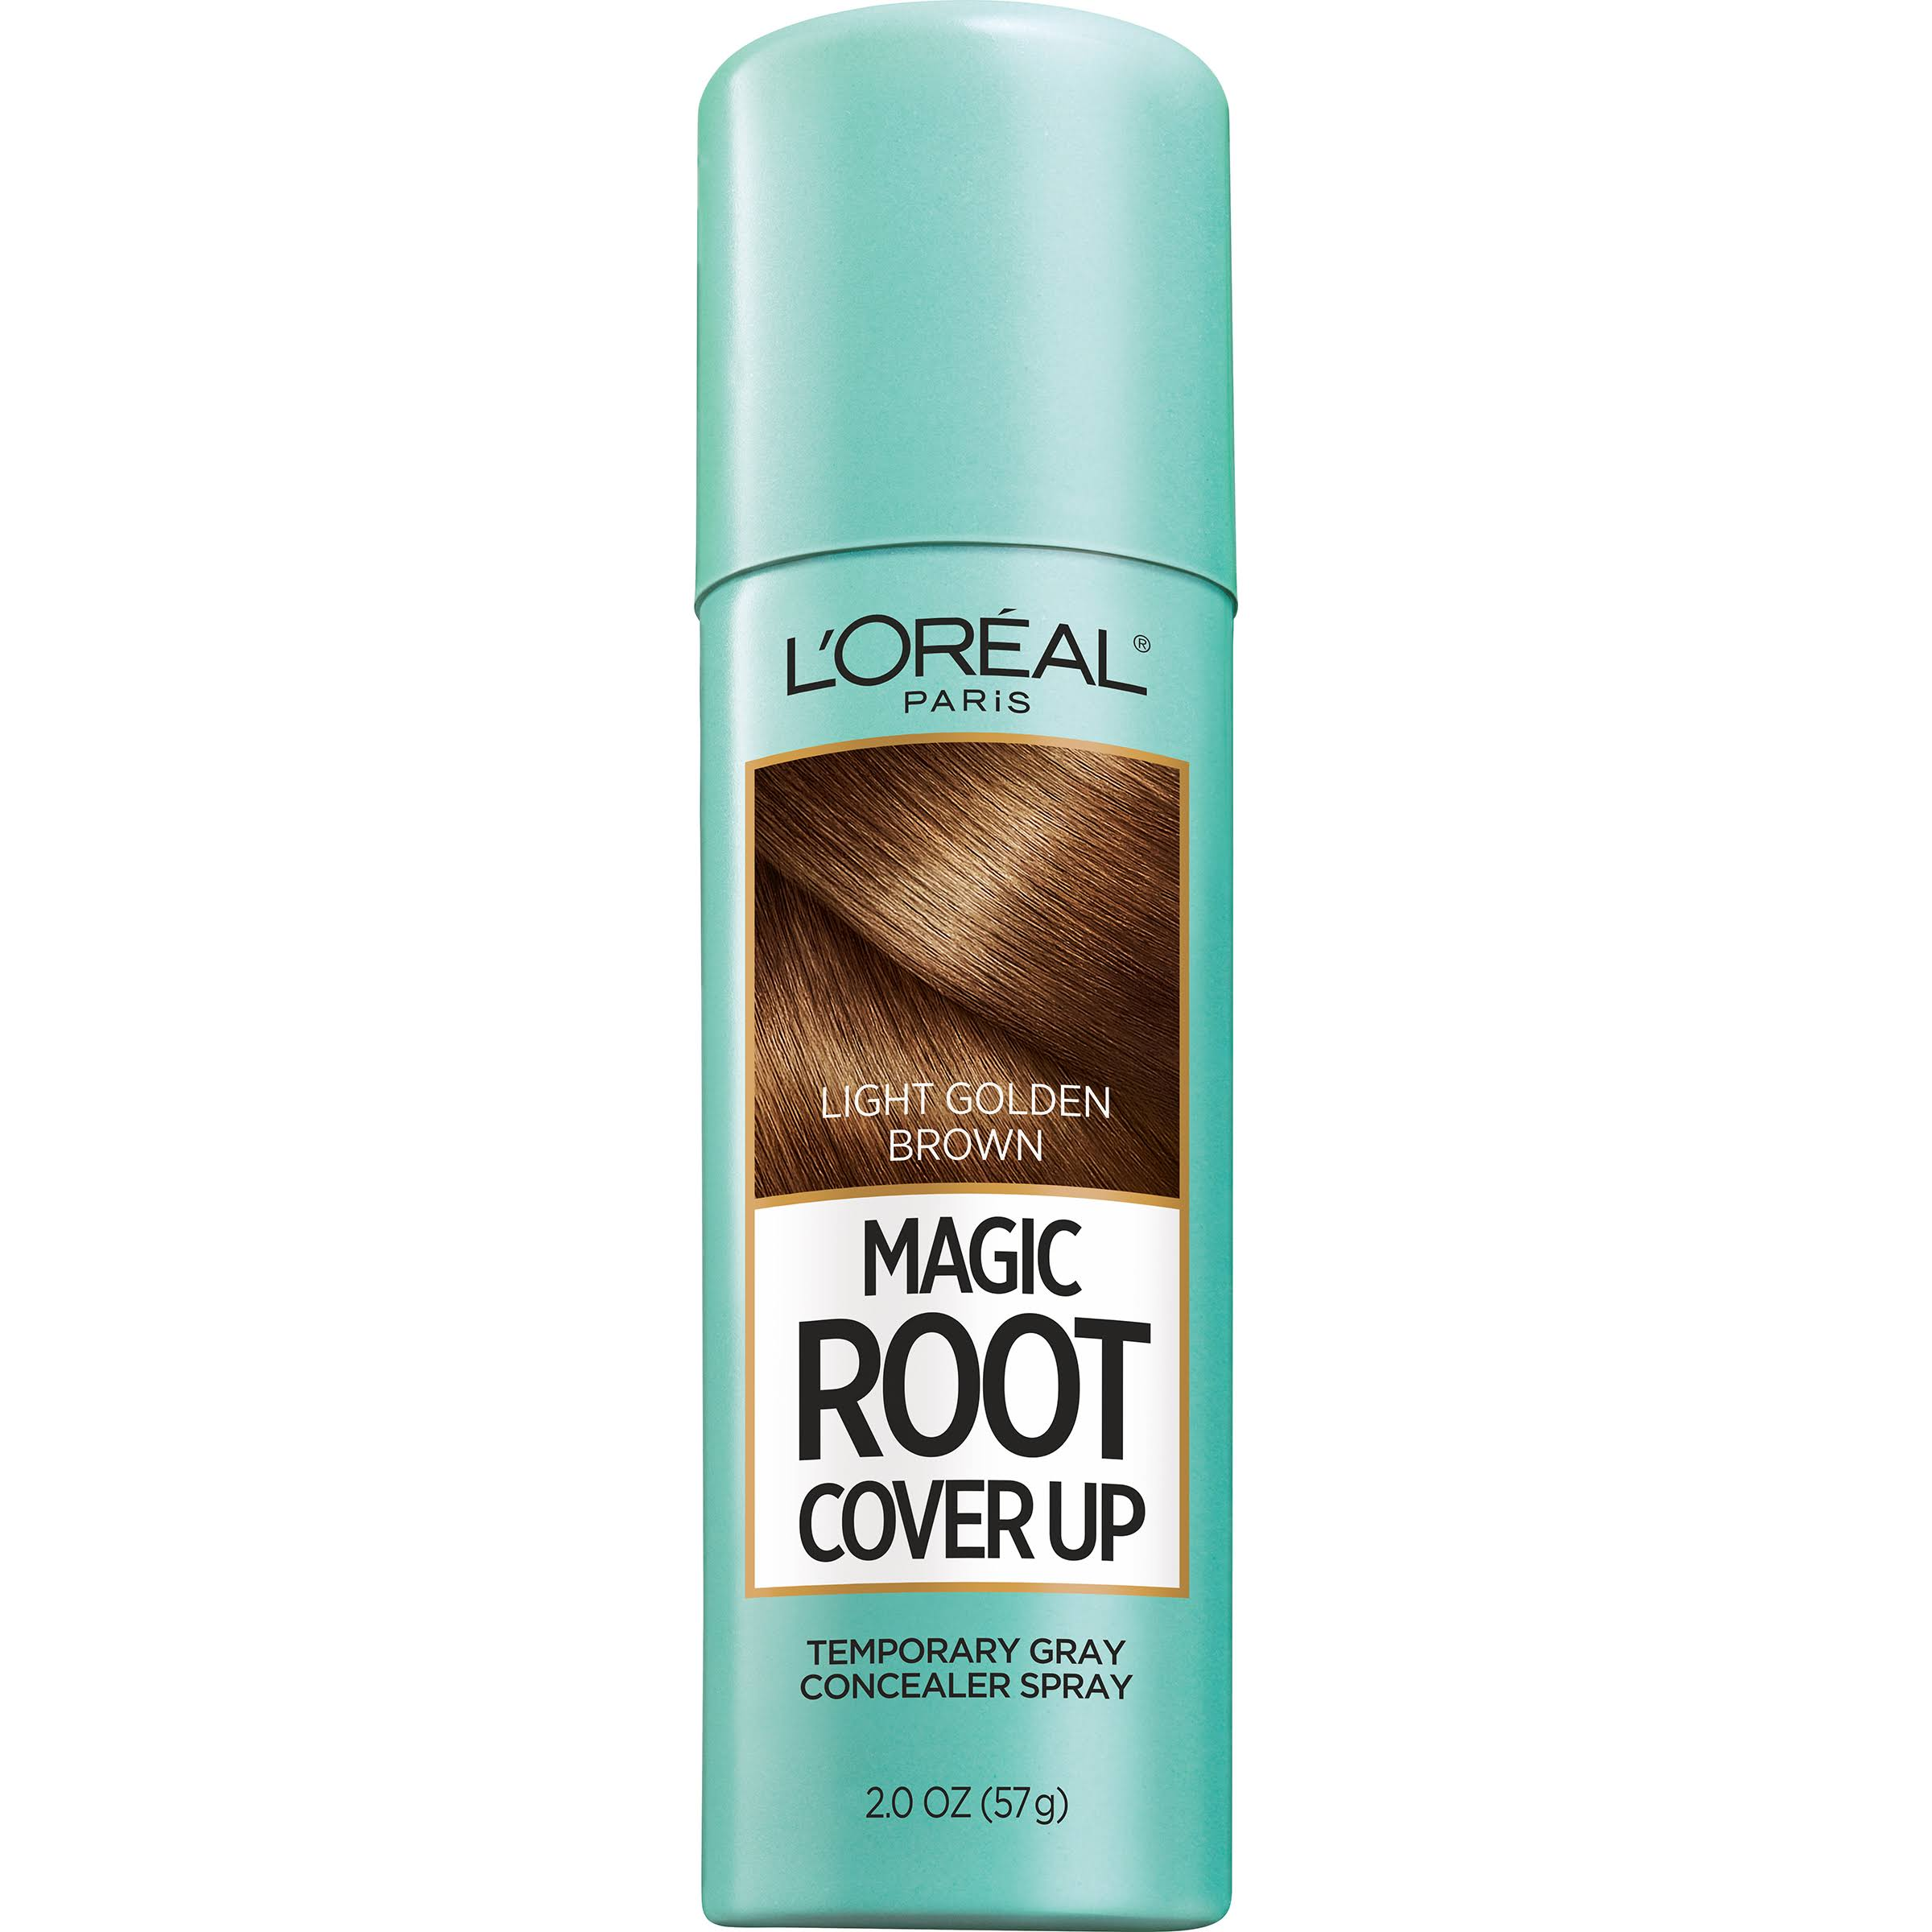 L'Oréal Paris Magic Root Cover Up Systems - Light Golden Brown, 2.0oz